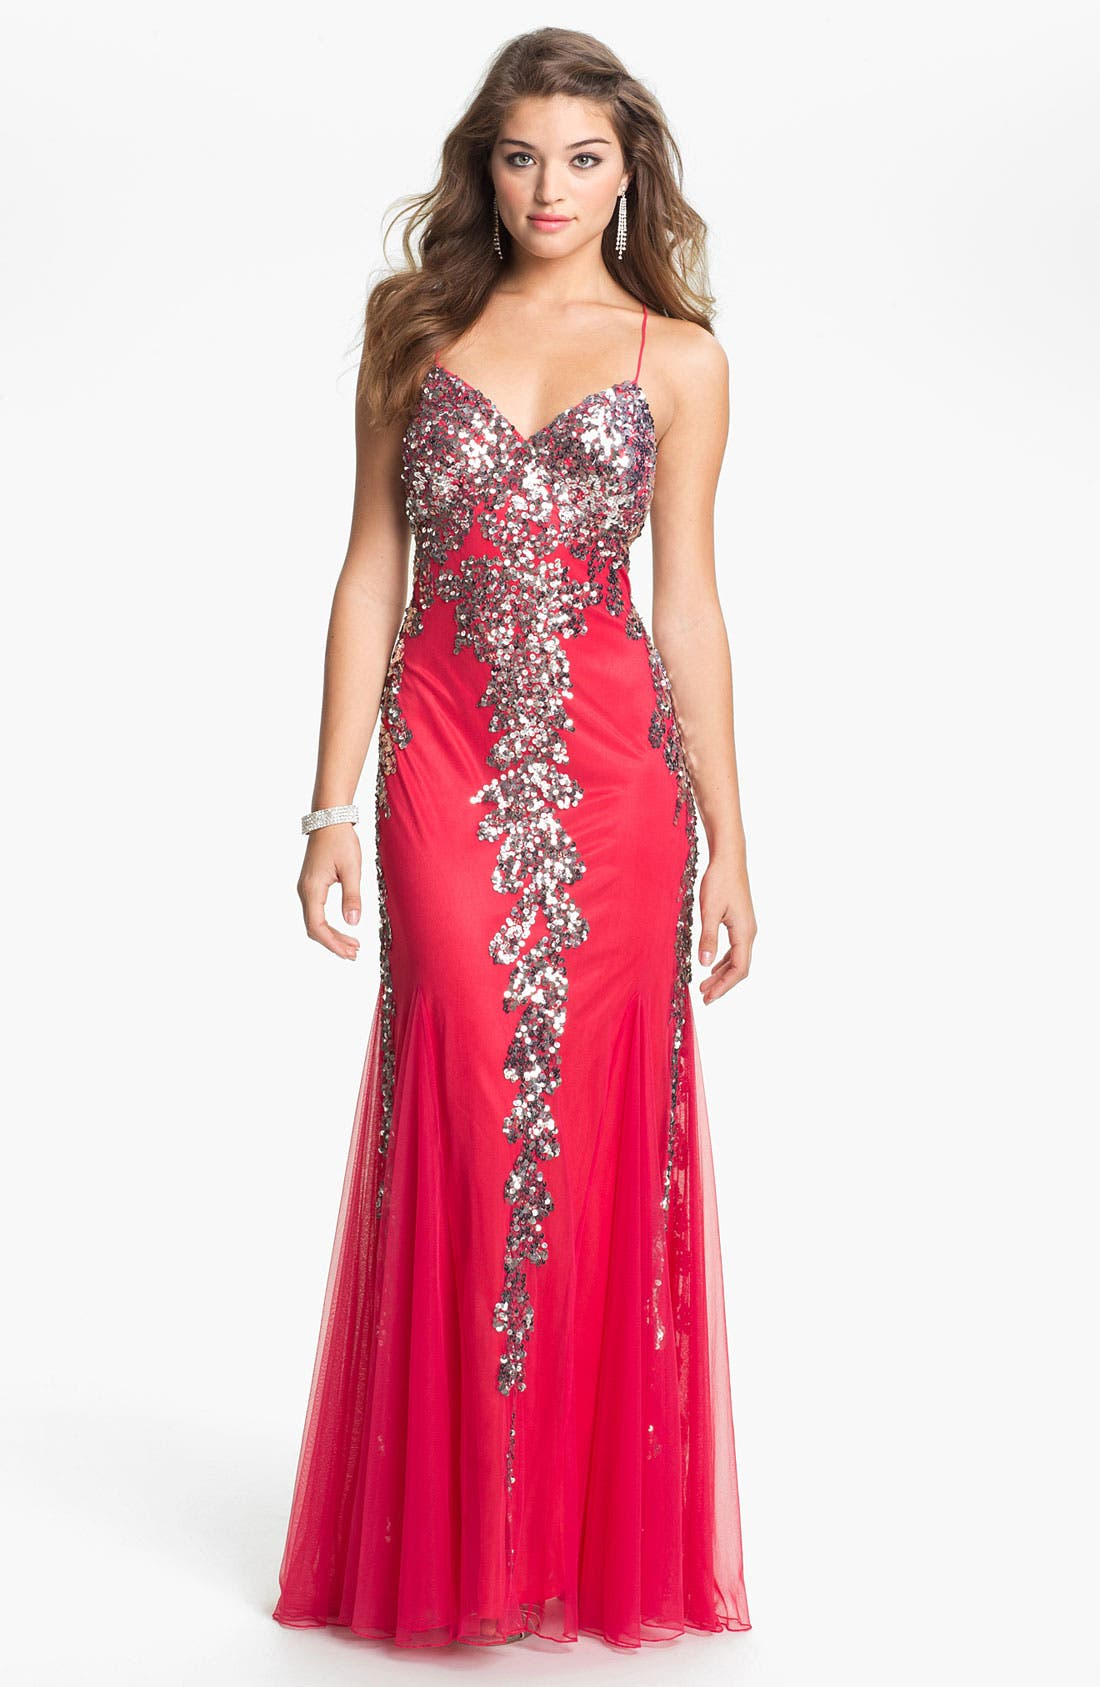 Alternate Image 1 Selected - Faviana Embellished Mesh Gown (Online Exclusive)